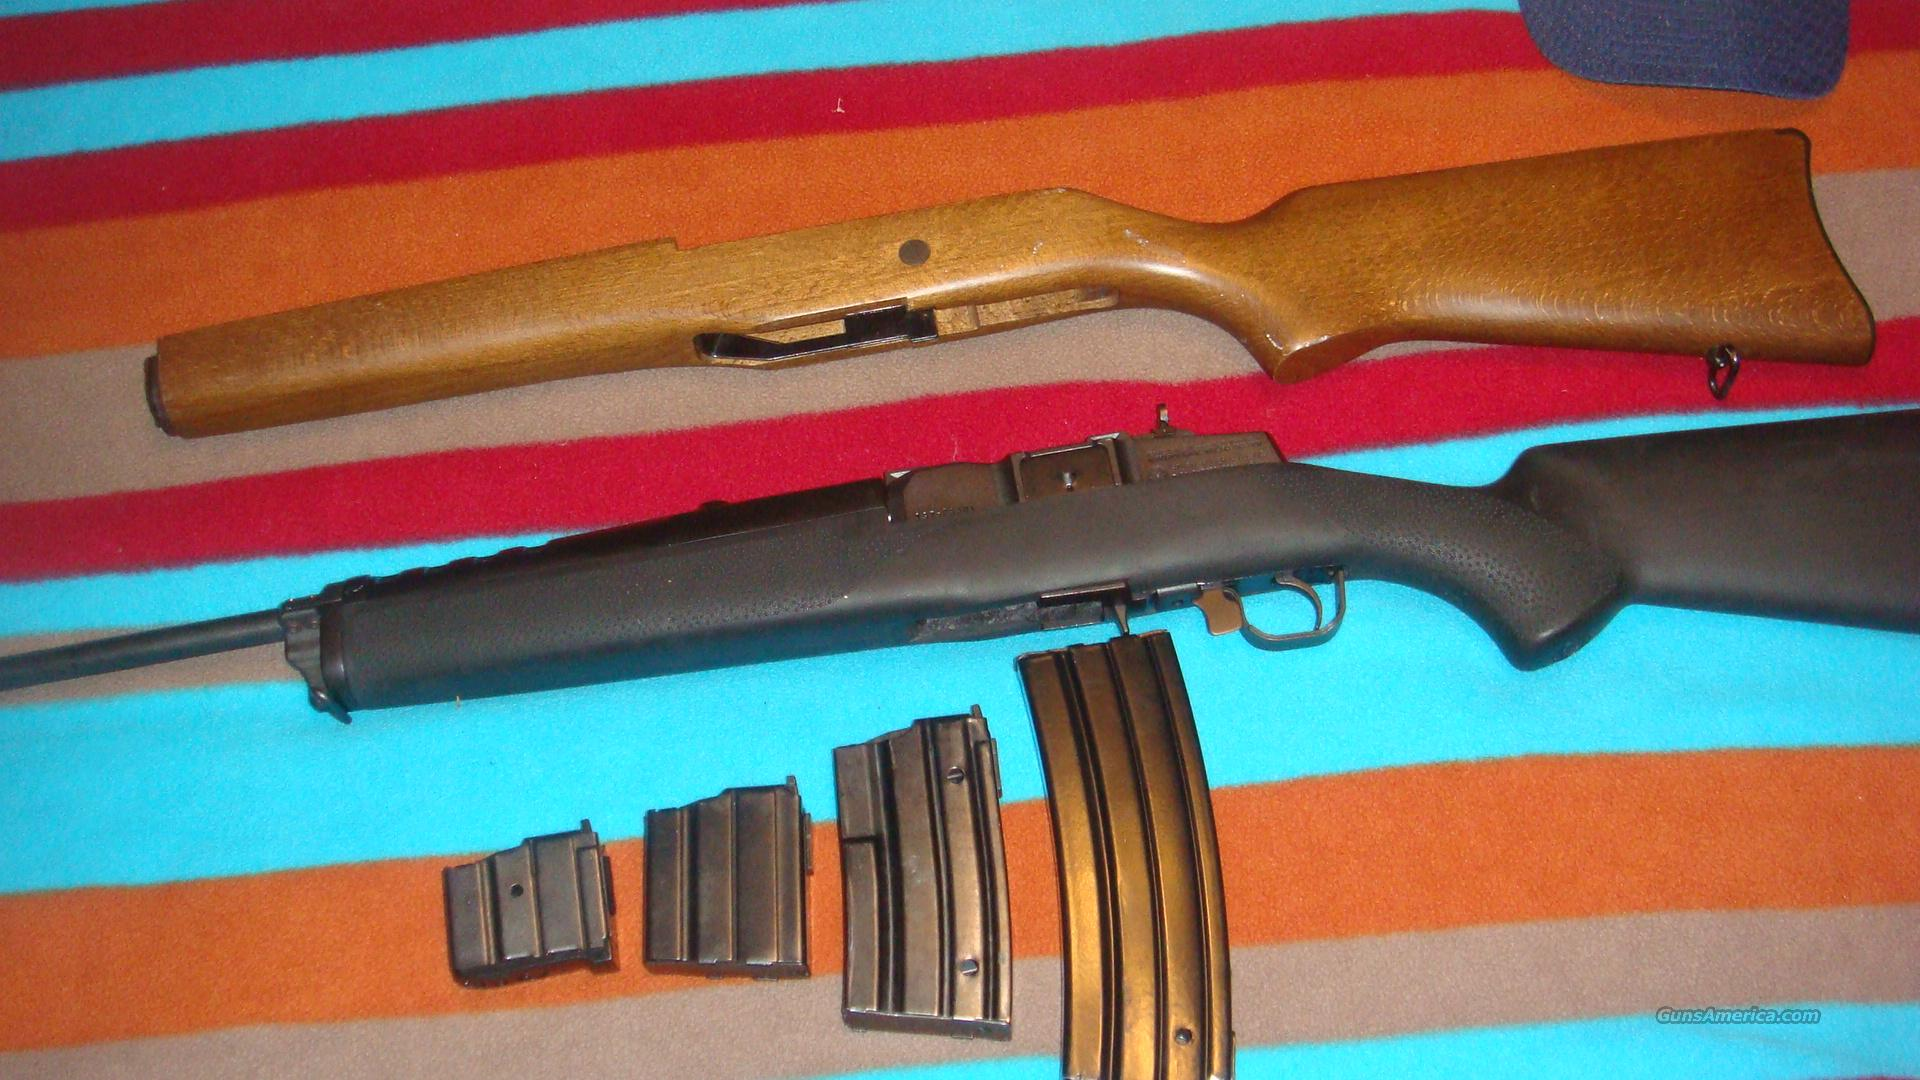 Ruger Mini 14 semi-auto,2 stocks,extra mags  Guns > Rifles > Ruger Rifles > Mini-14 Type